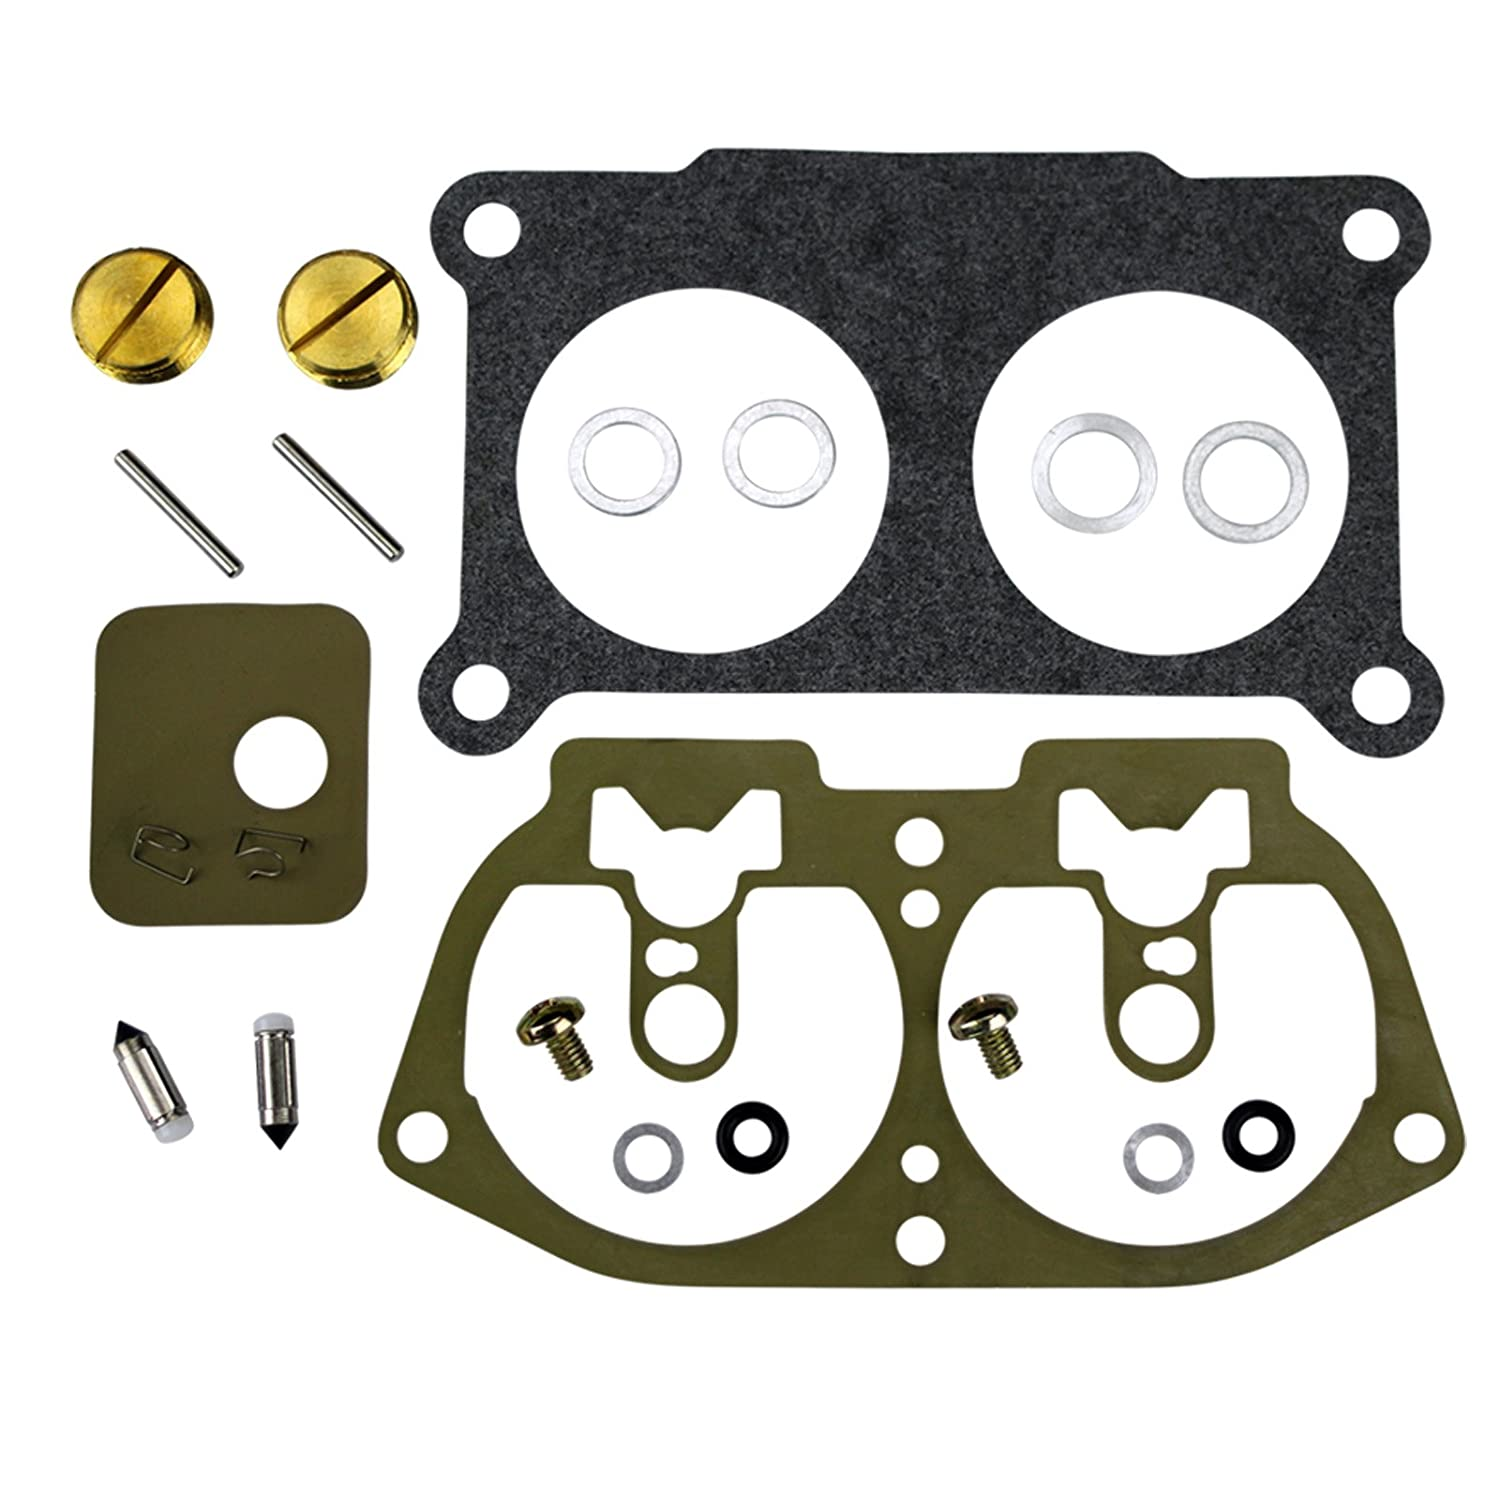 Yamaha Outboard V4 V6 Carb Carburetor Rebuild Kit Many 115 130 150 175 200 225 HP Replaces//Compatible With Yamaha Part Number 6E5-W0093-06 /& Sierra Part Number 18-7002